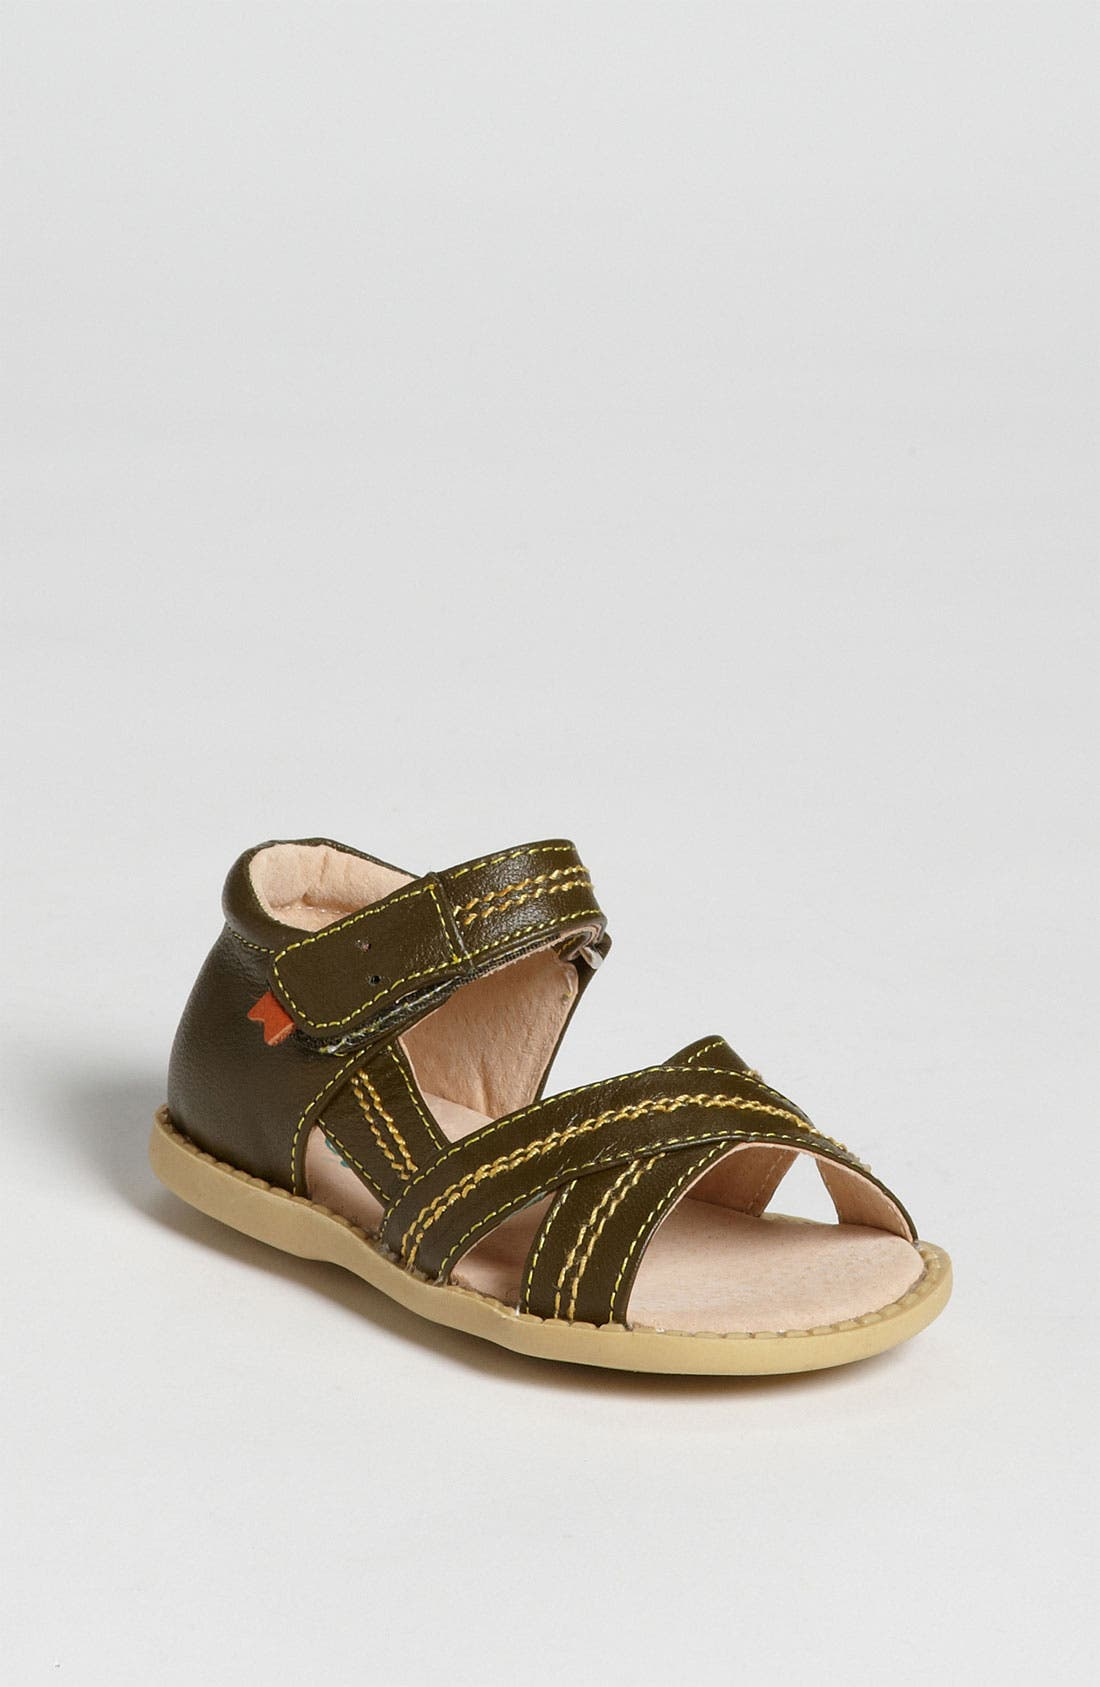 Main Image - Livie & Luca 'Boa' Sandal (Baby, Walker & Toddler)